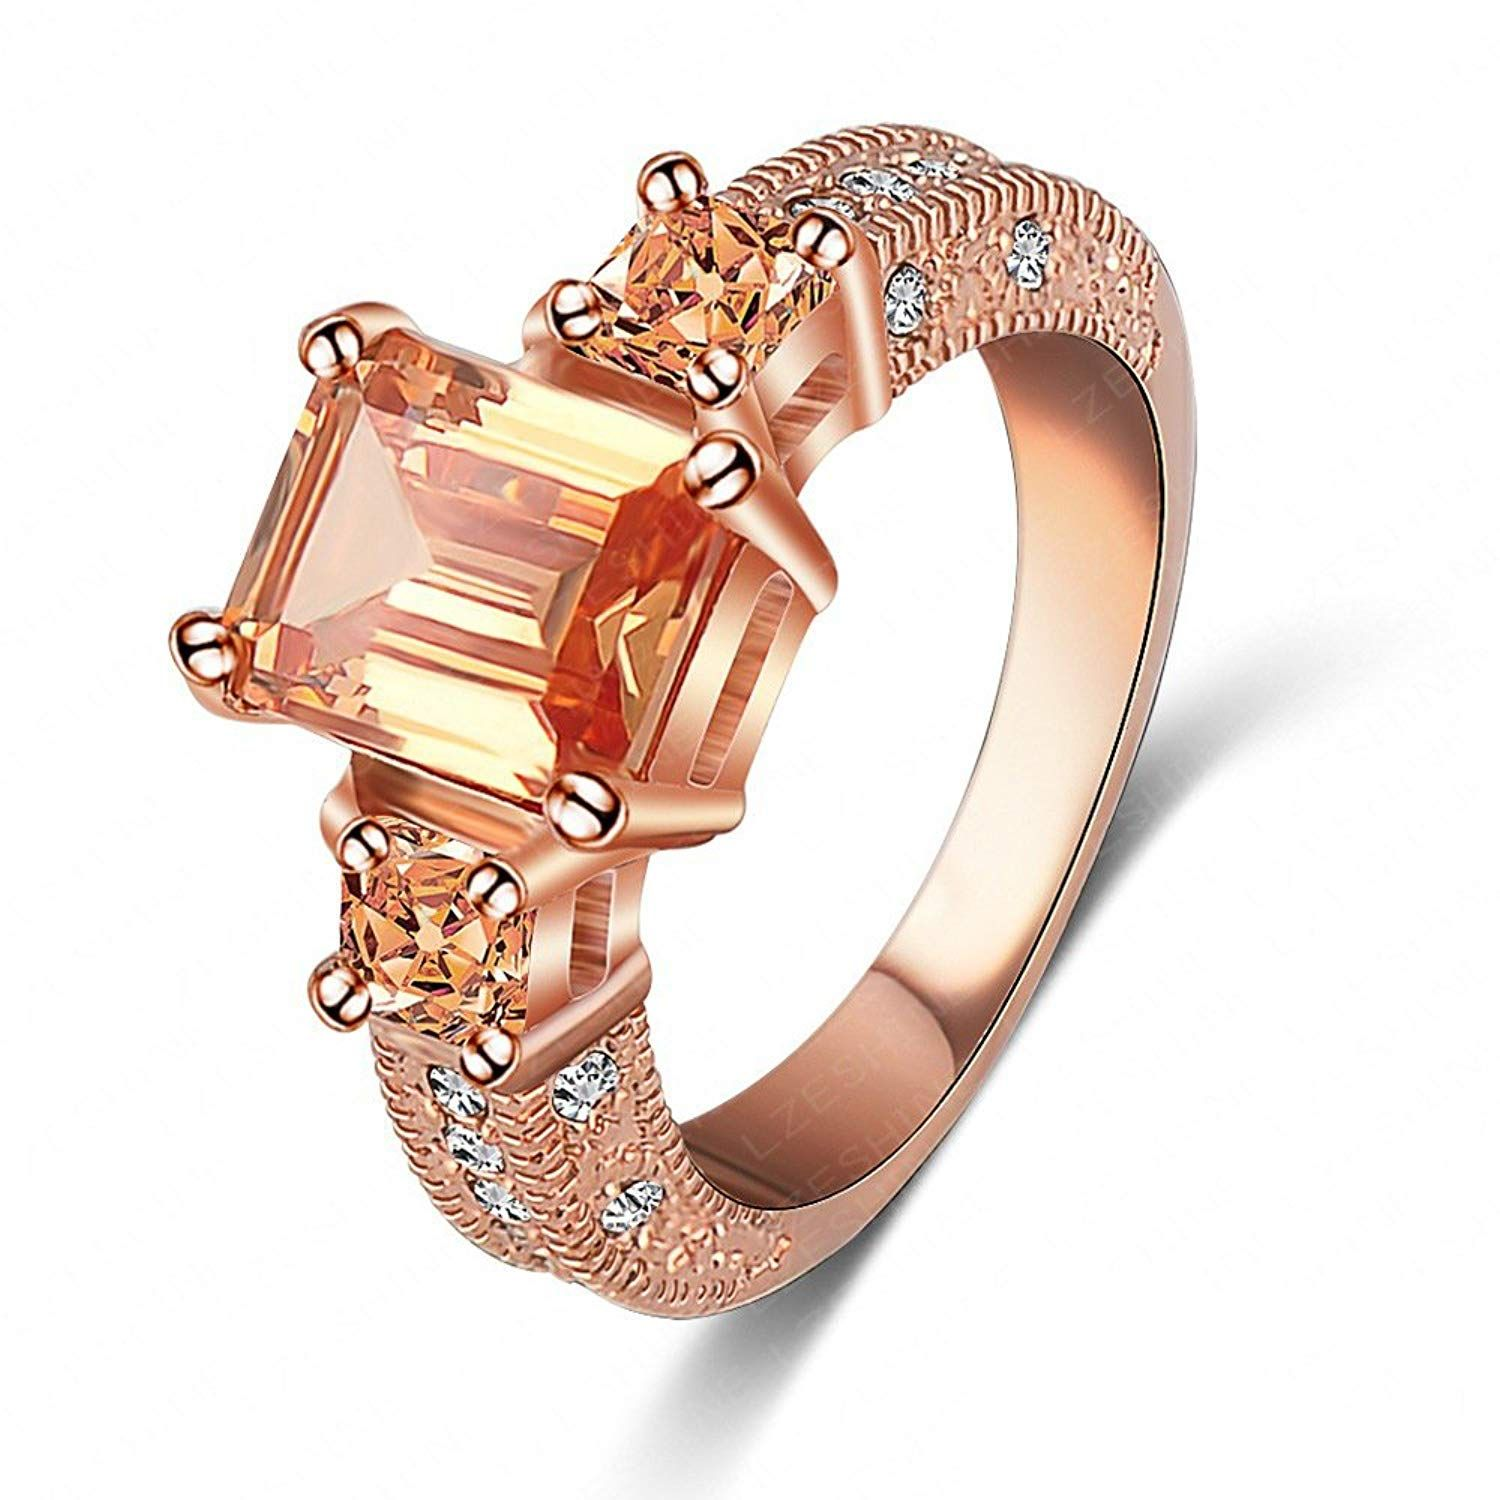 31fa11267 LuckyWeng New Exquisite Fashion Jewelry Rose Gold Austrian Crystal  Champagne Diamond Zircon Ring * Very kind of your presence to have dropped  by to view our ...